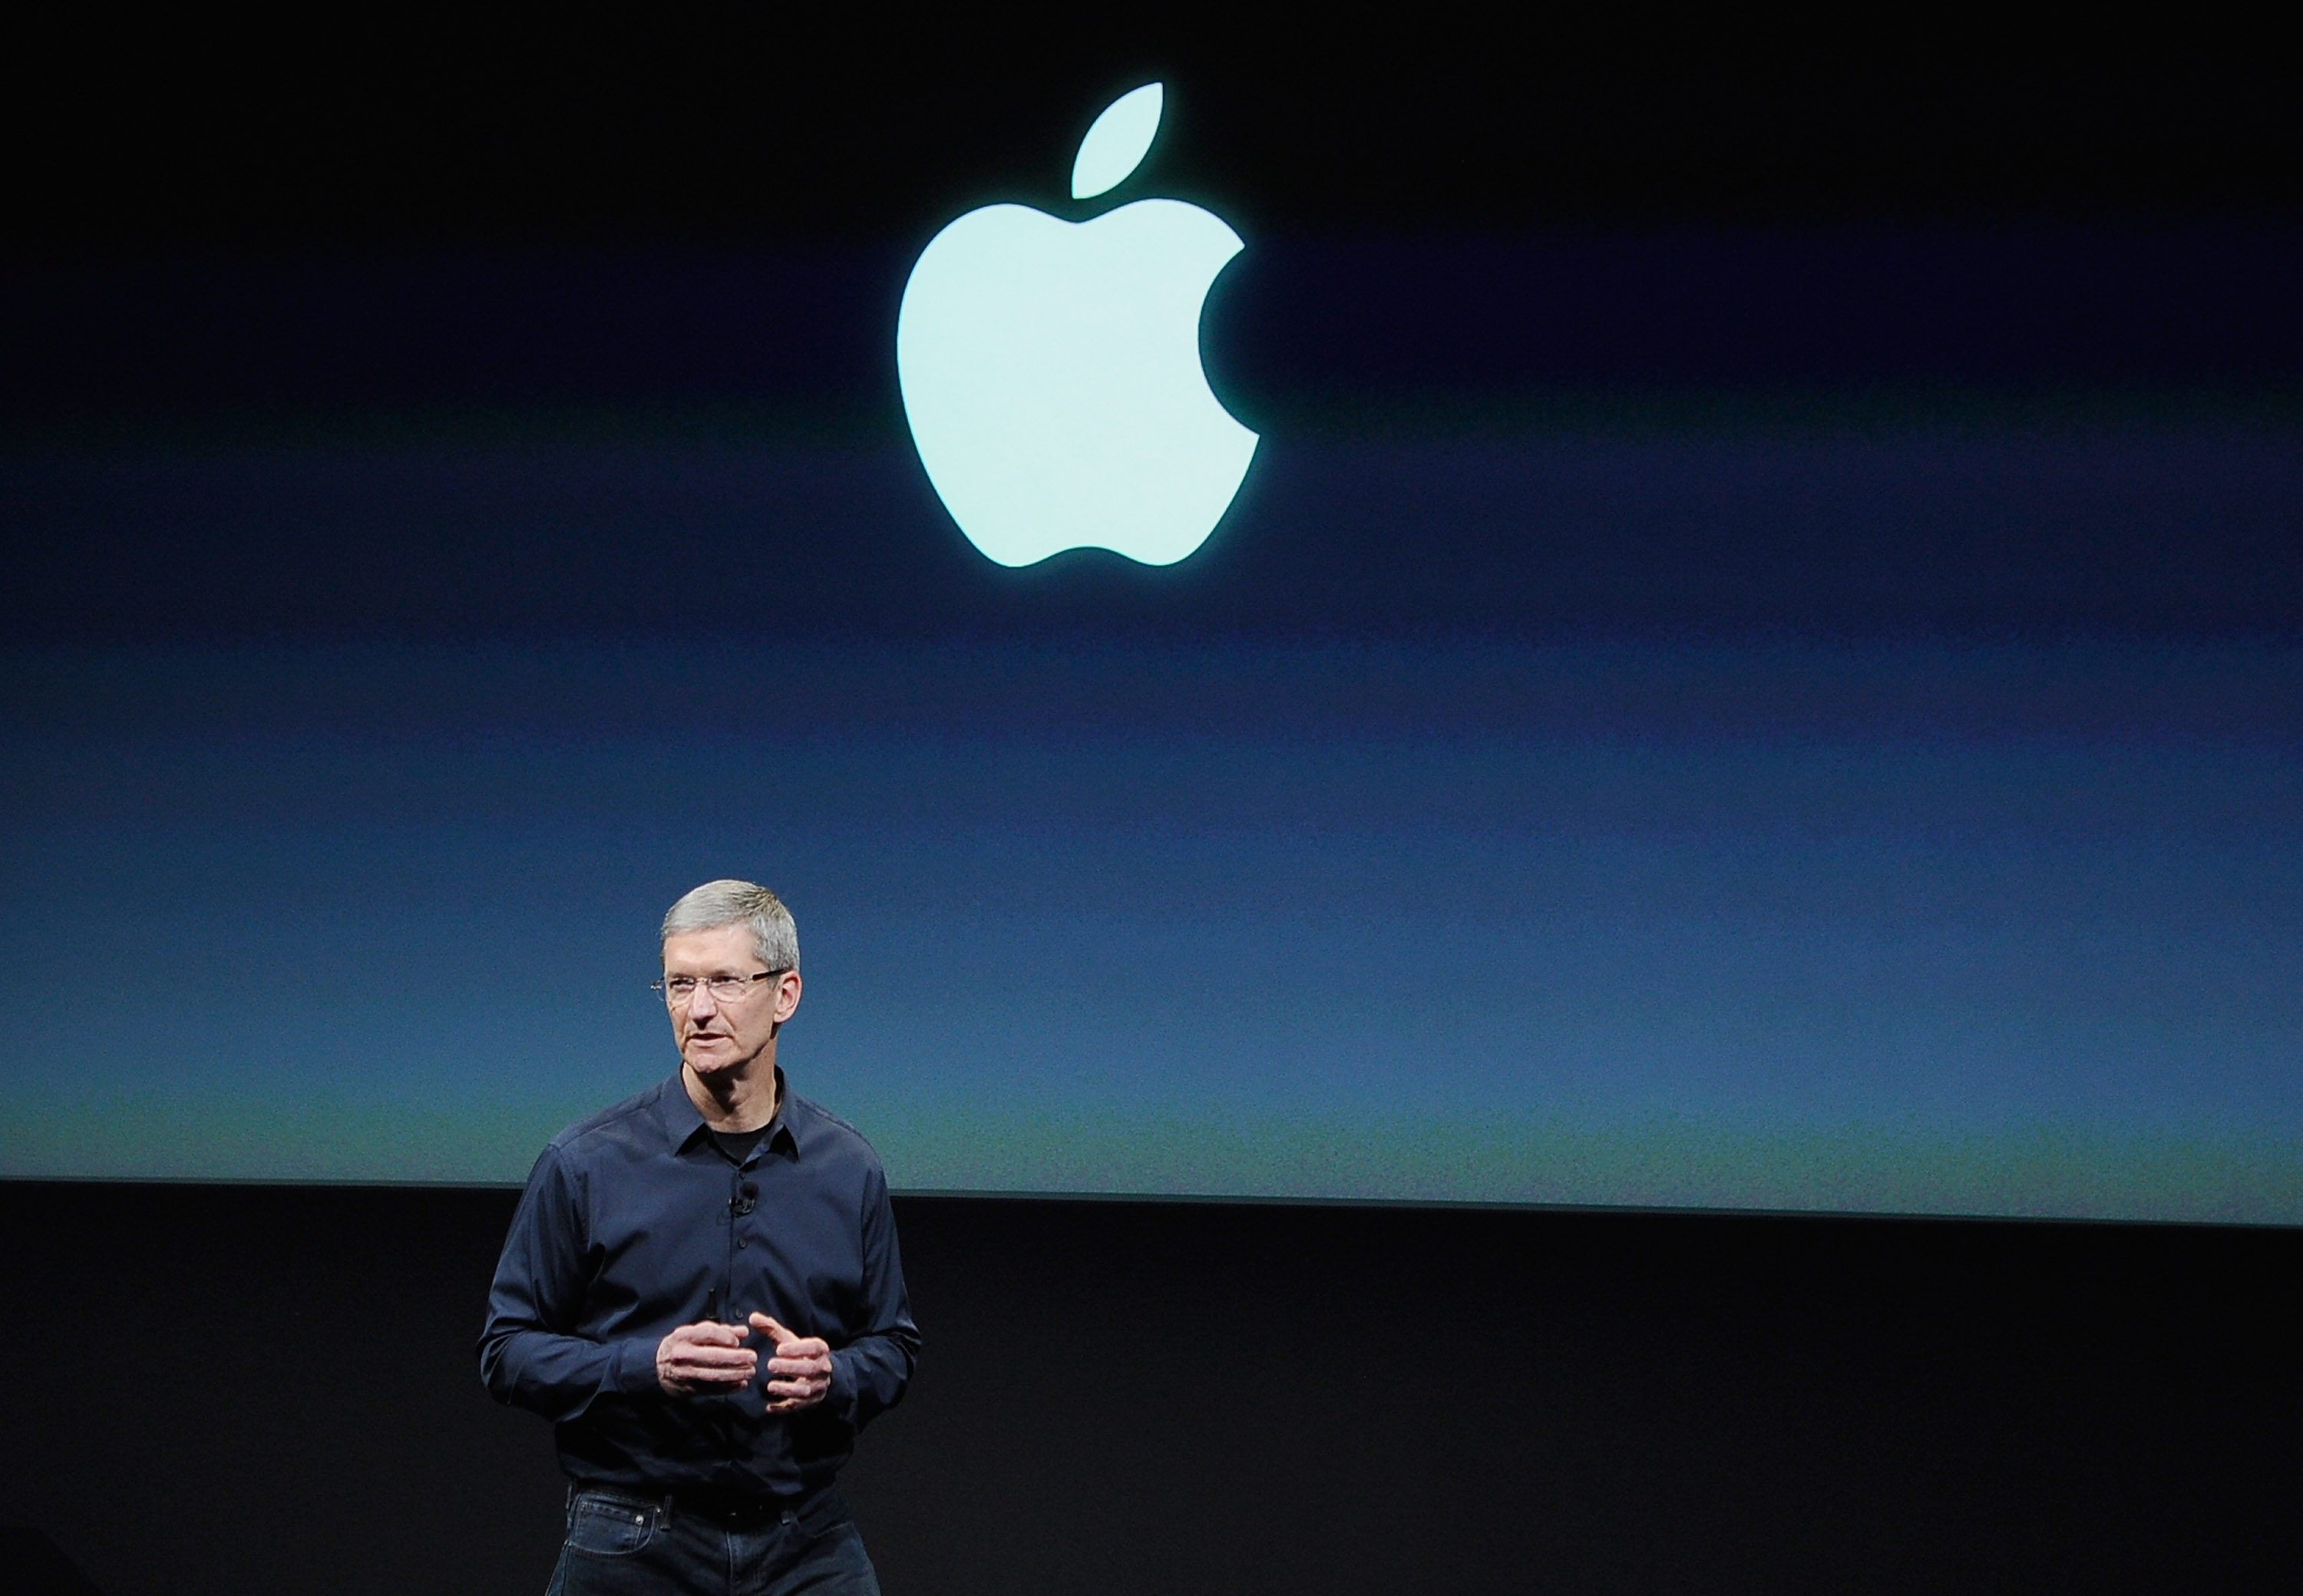 New Apple CEO Tim Cook Introduces New iPhone